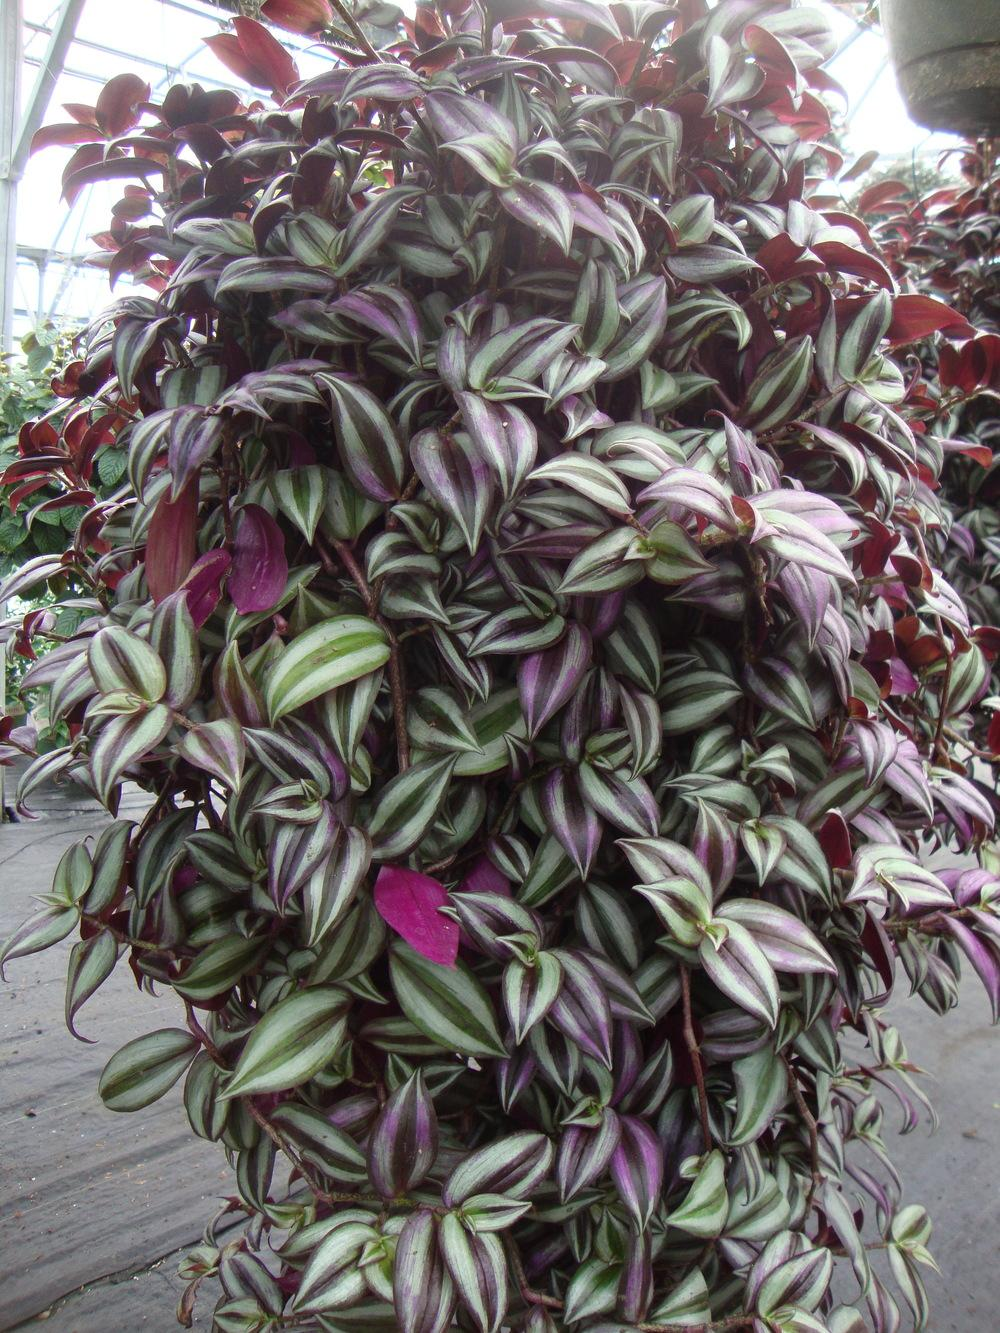 Photo of the entire plant of Inch Plant (Tradescantia ... on sanguineum plant, iresine plant, traveling jew plant, sedum plant, vriesea plant, rubra plant, kalanchoe plant, purple wandering jew plant, wandering jude plant, oxalis plant, walking jew plant, zebra plant, wandering jew house plant, creeping fig plant, rhoeo plant, codiaeum plant, balloon plant, philodendron plant, schefflera plant,